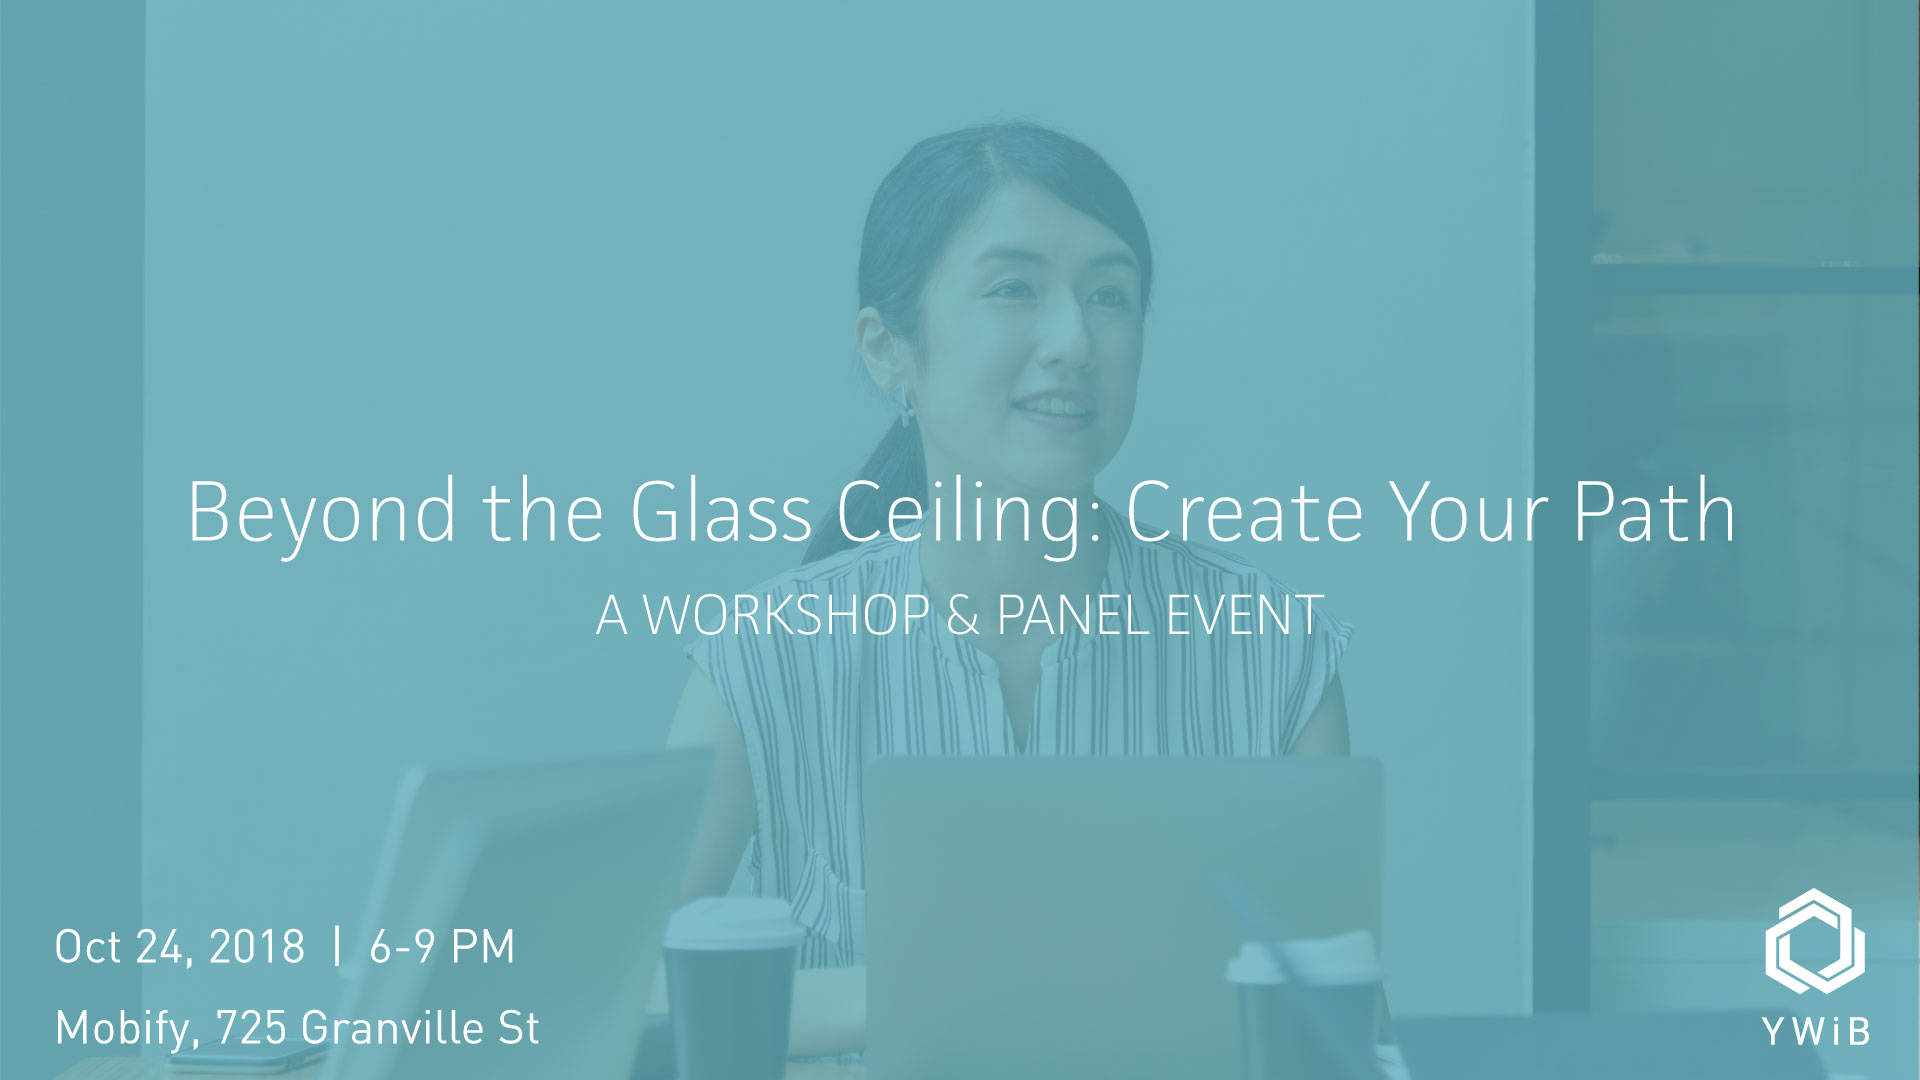 YWiB_Panel_eventbrite_Sept2018.jpg